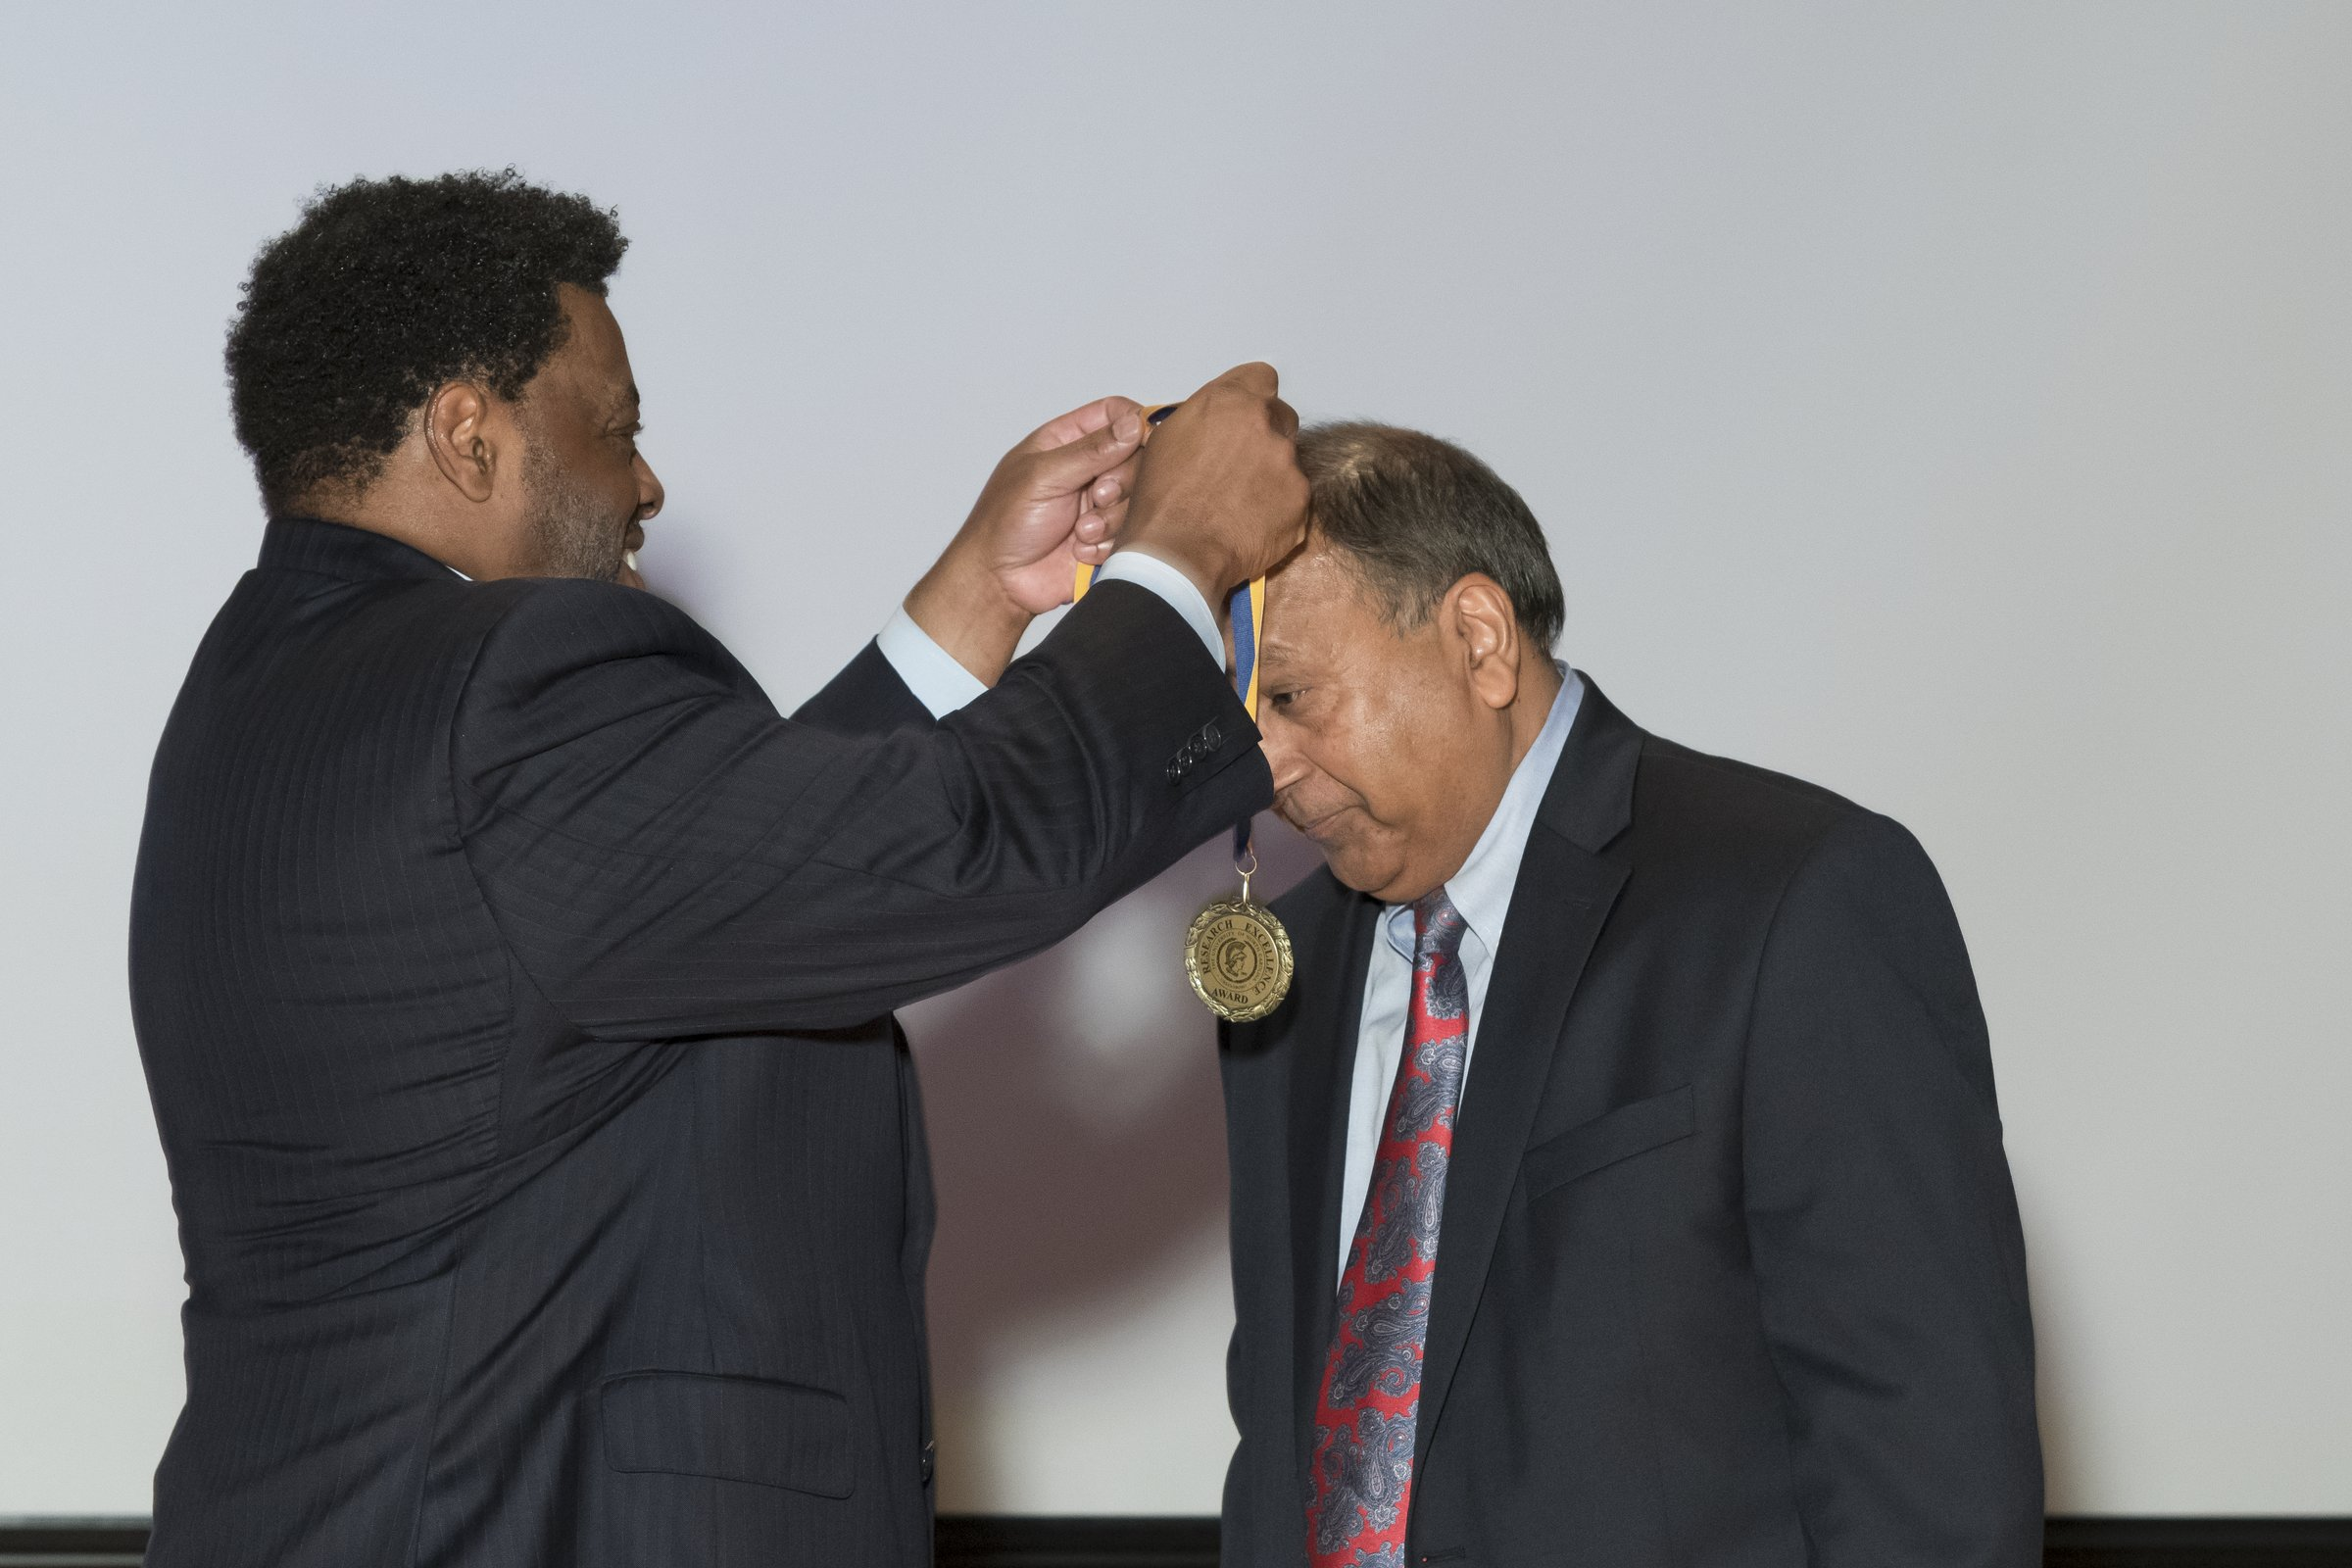 Photo of Chancellor Gilliam presenting an award to a male recipient